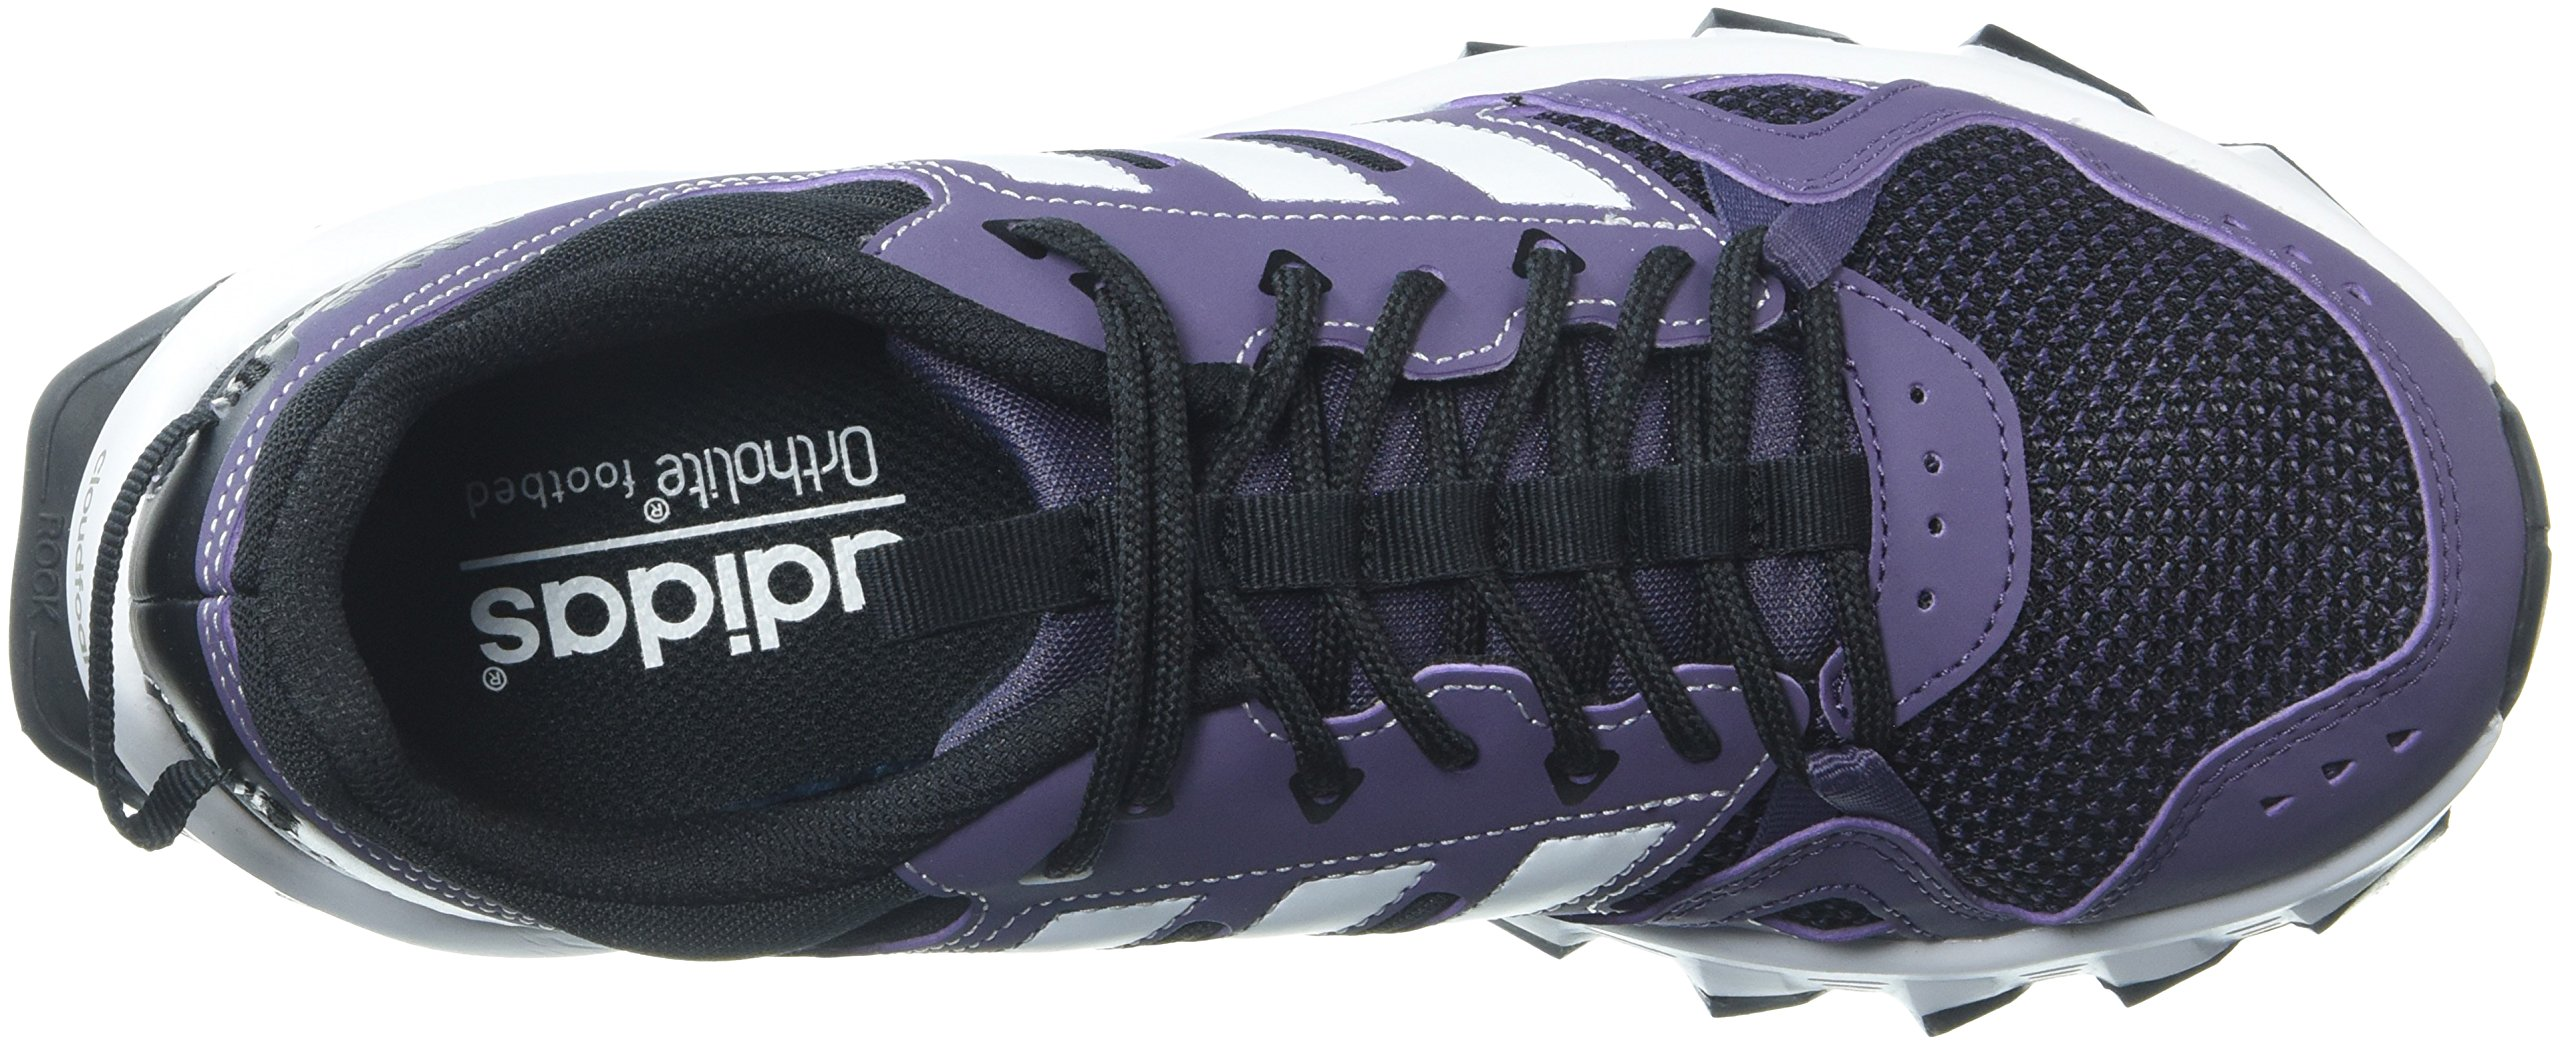 adidas Women's Rockadia w Trail Running Shoe, Trace Purple/White/Core Black, 7 M US by adidas (Image #8)